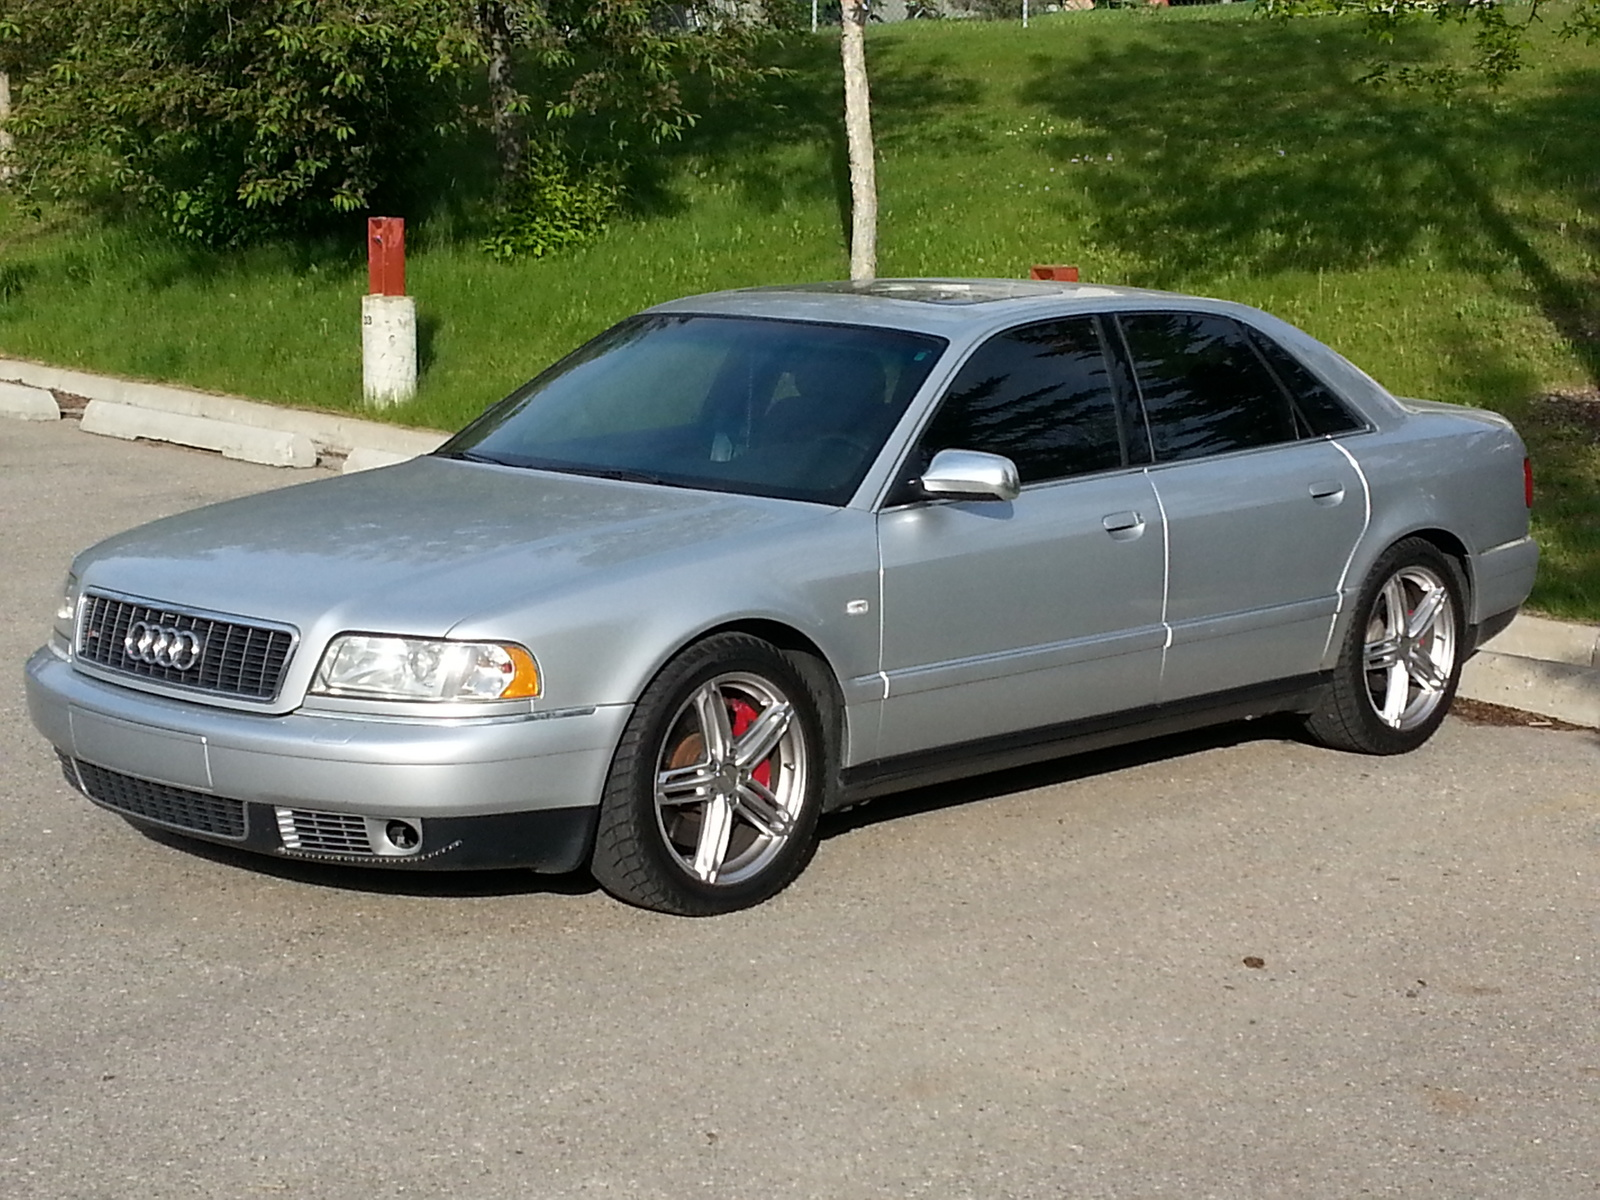 2002 Audi S8 4 Dr quattro AWD Sedan picture